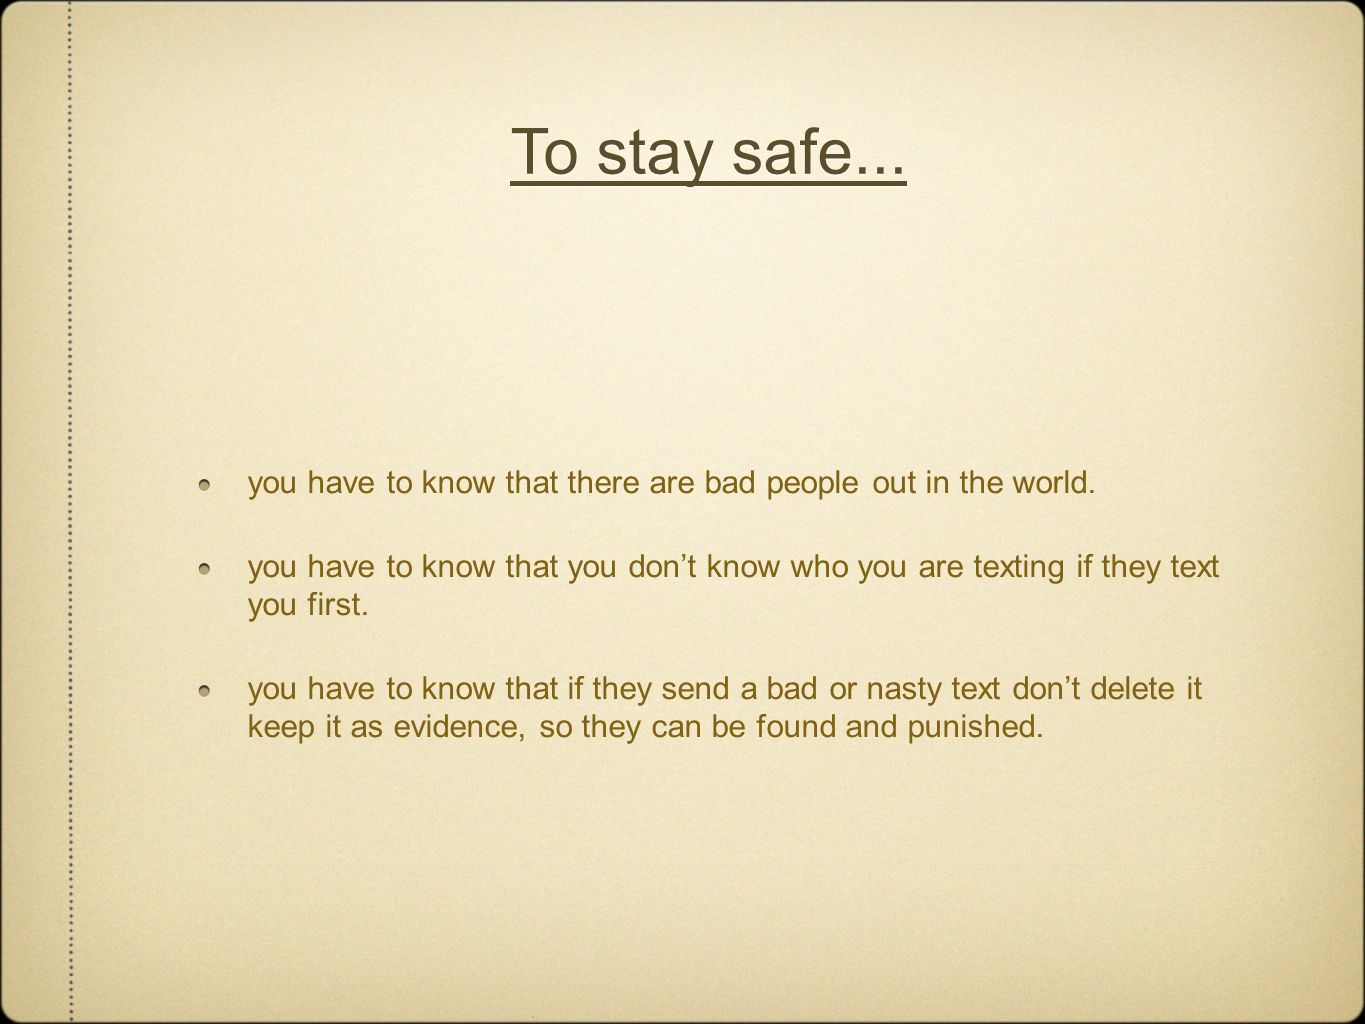 To stay safe... you have to know that there are bad people out in the world.